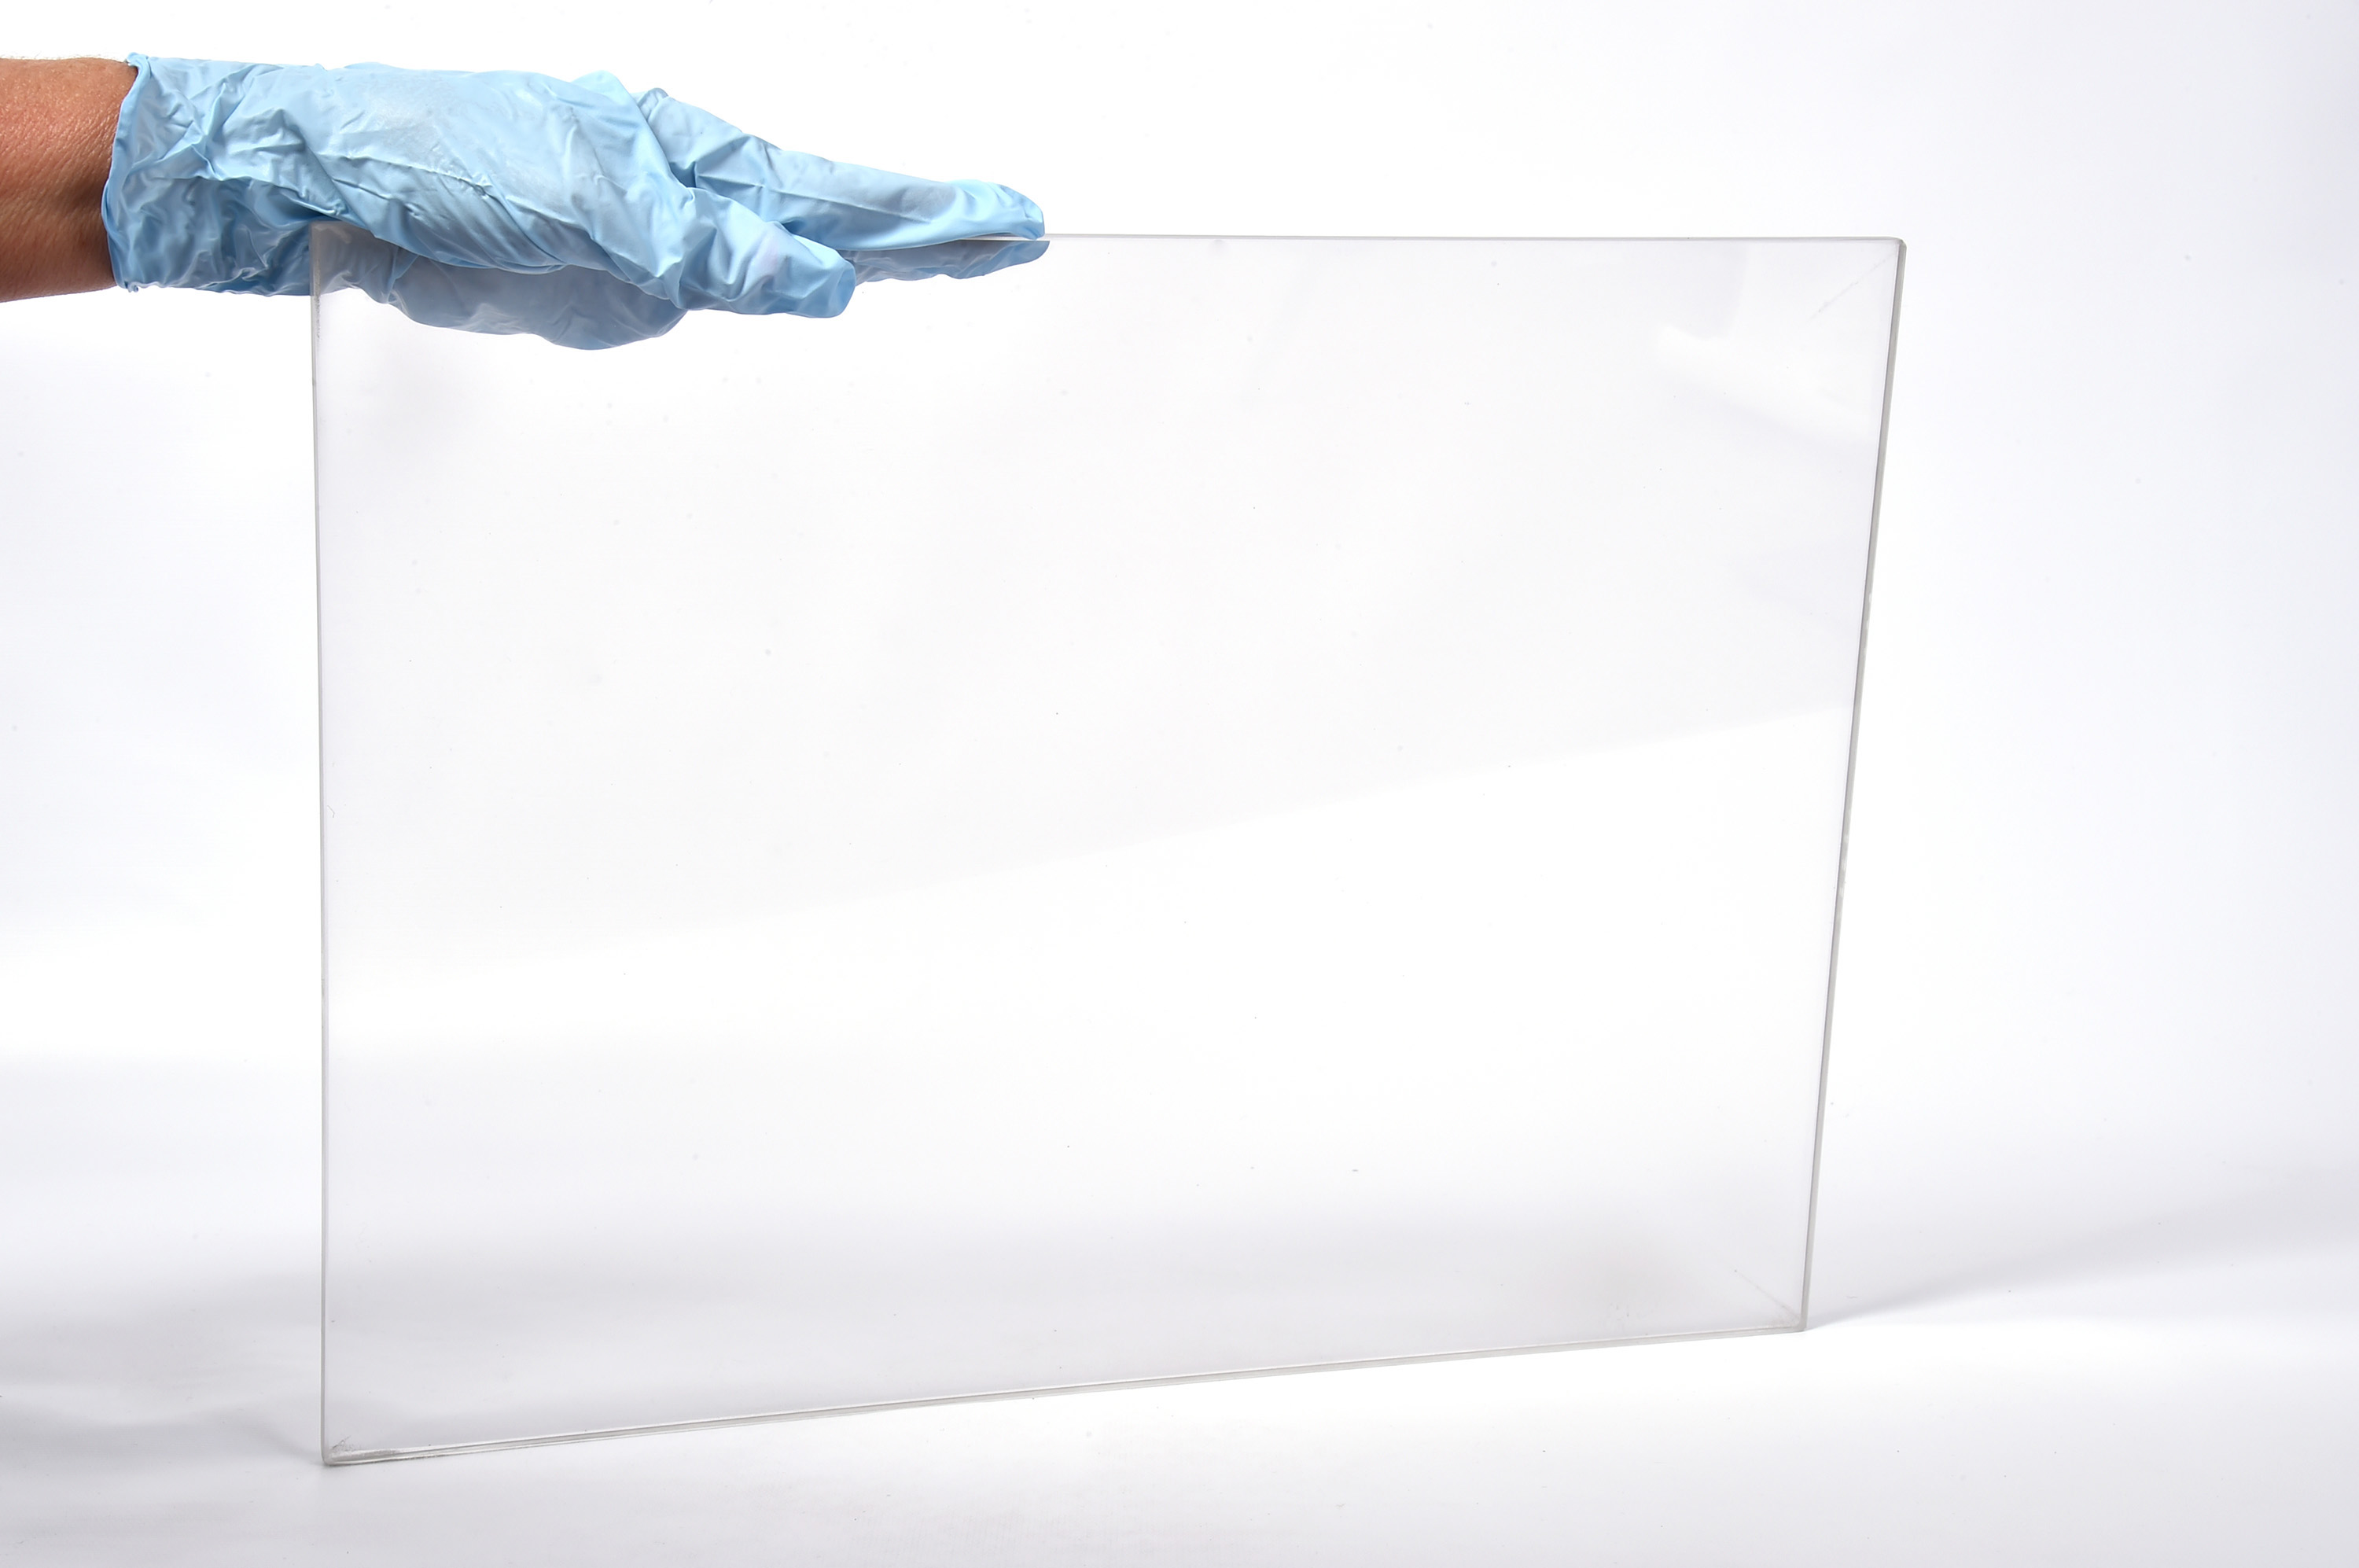 See-Through Aluminum Sheets Are Real and They Could ...